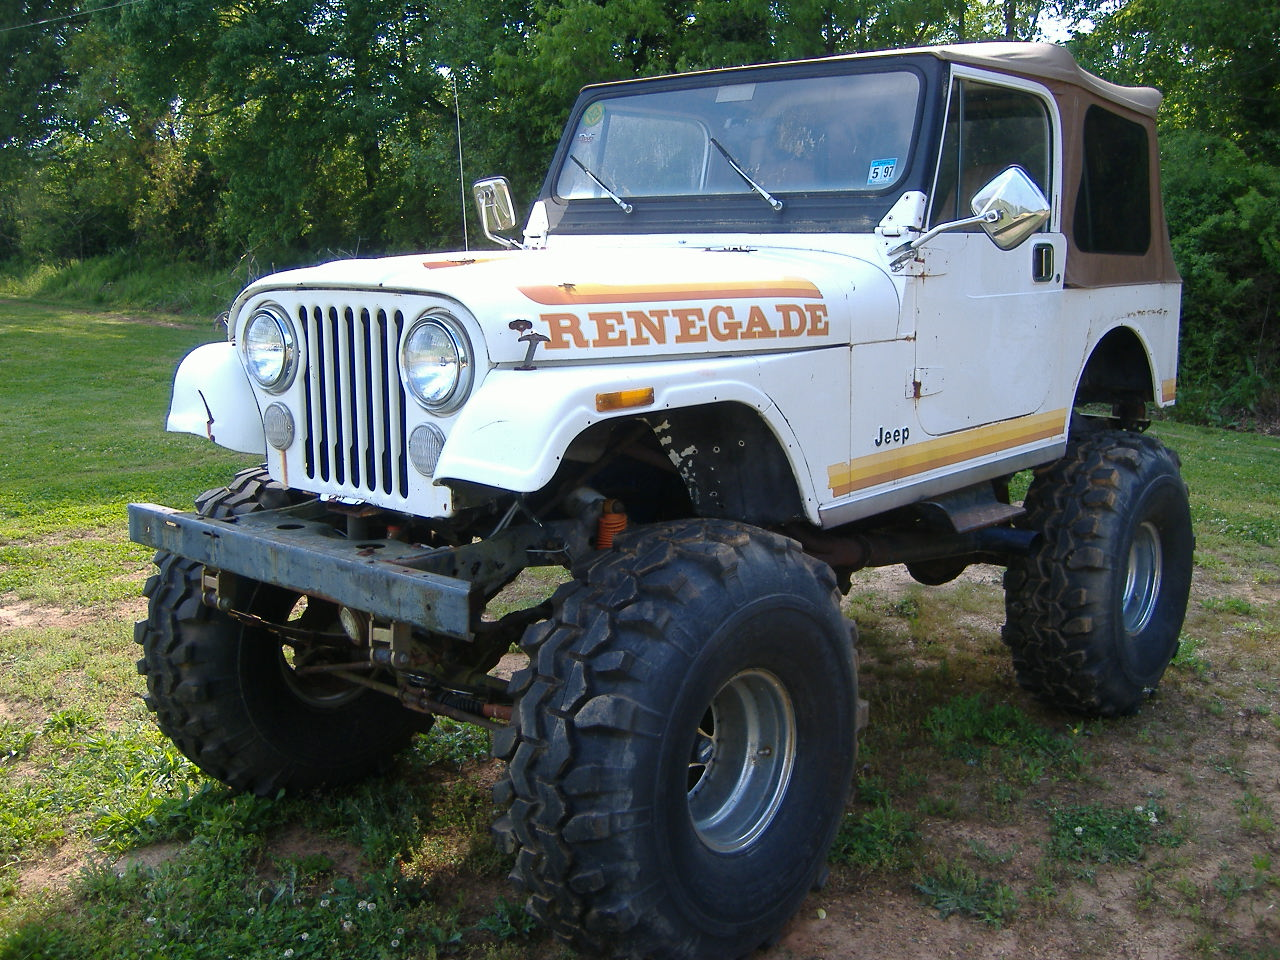 1981 Jeep CJ-7, 351W engine, new body, sports cage, Powder coated frame......